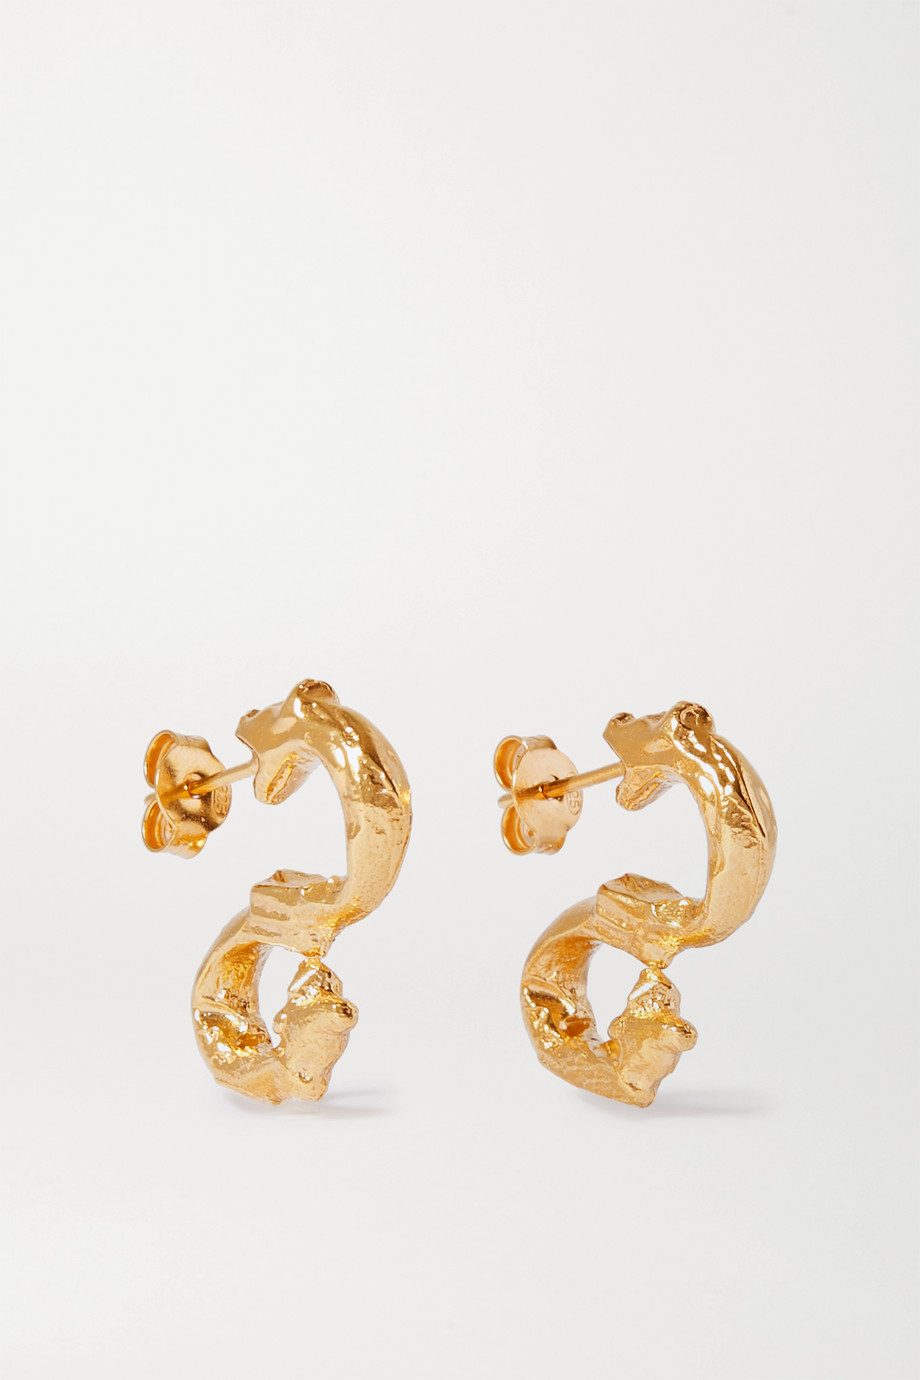 Alighieri Parola Ornata gold-plated earrings